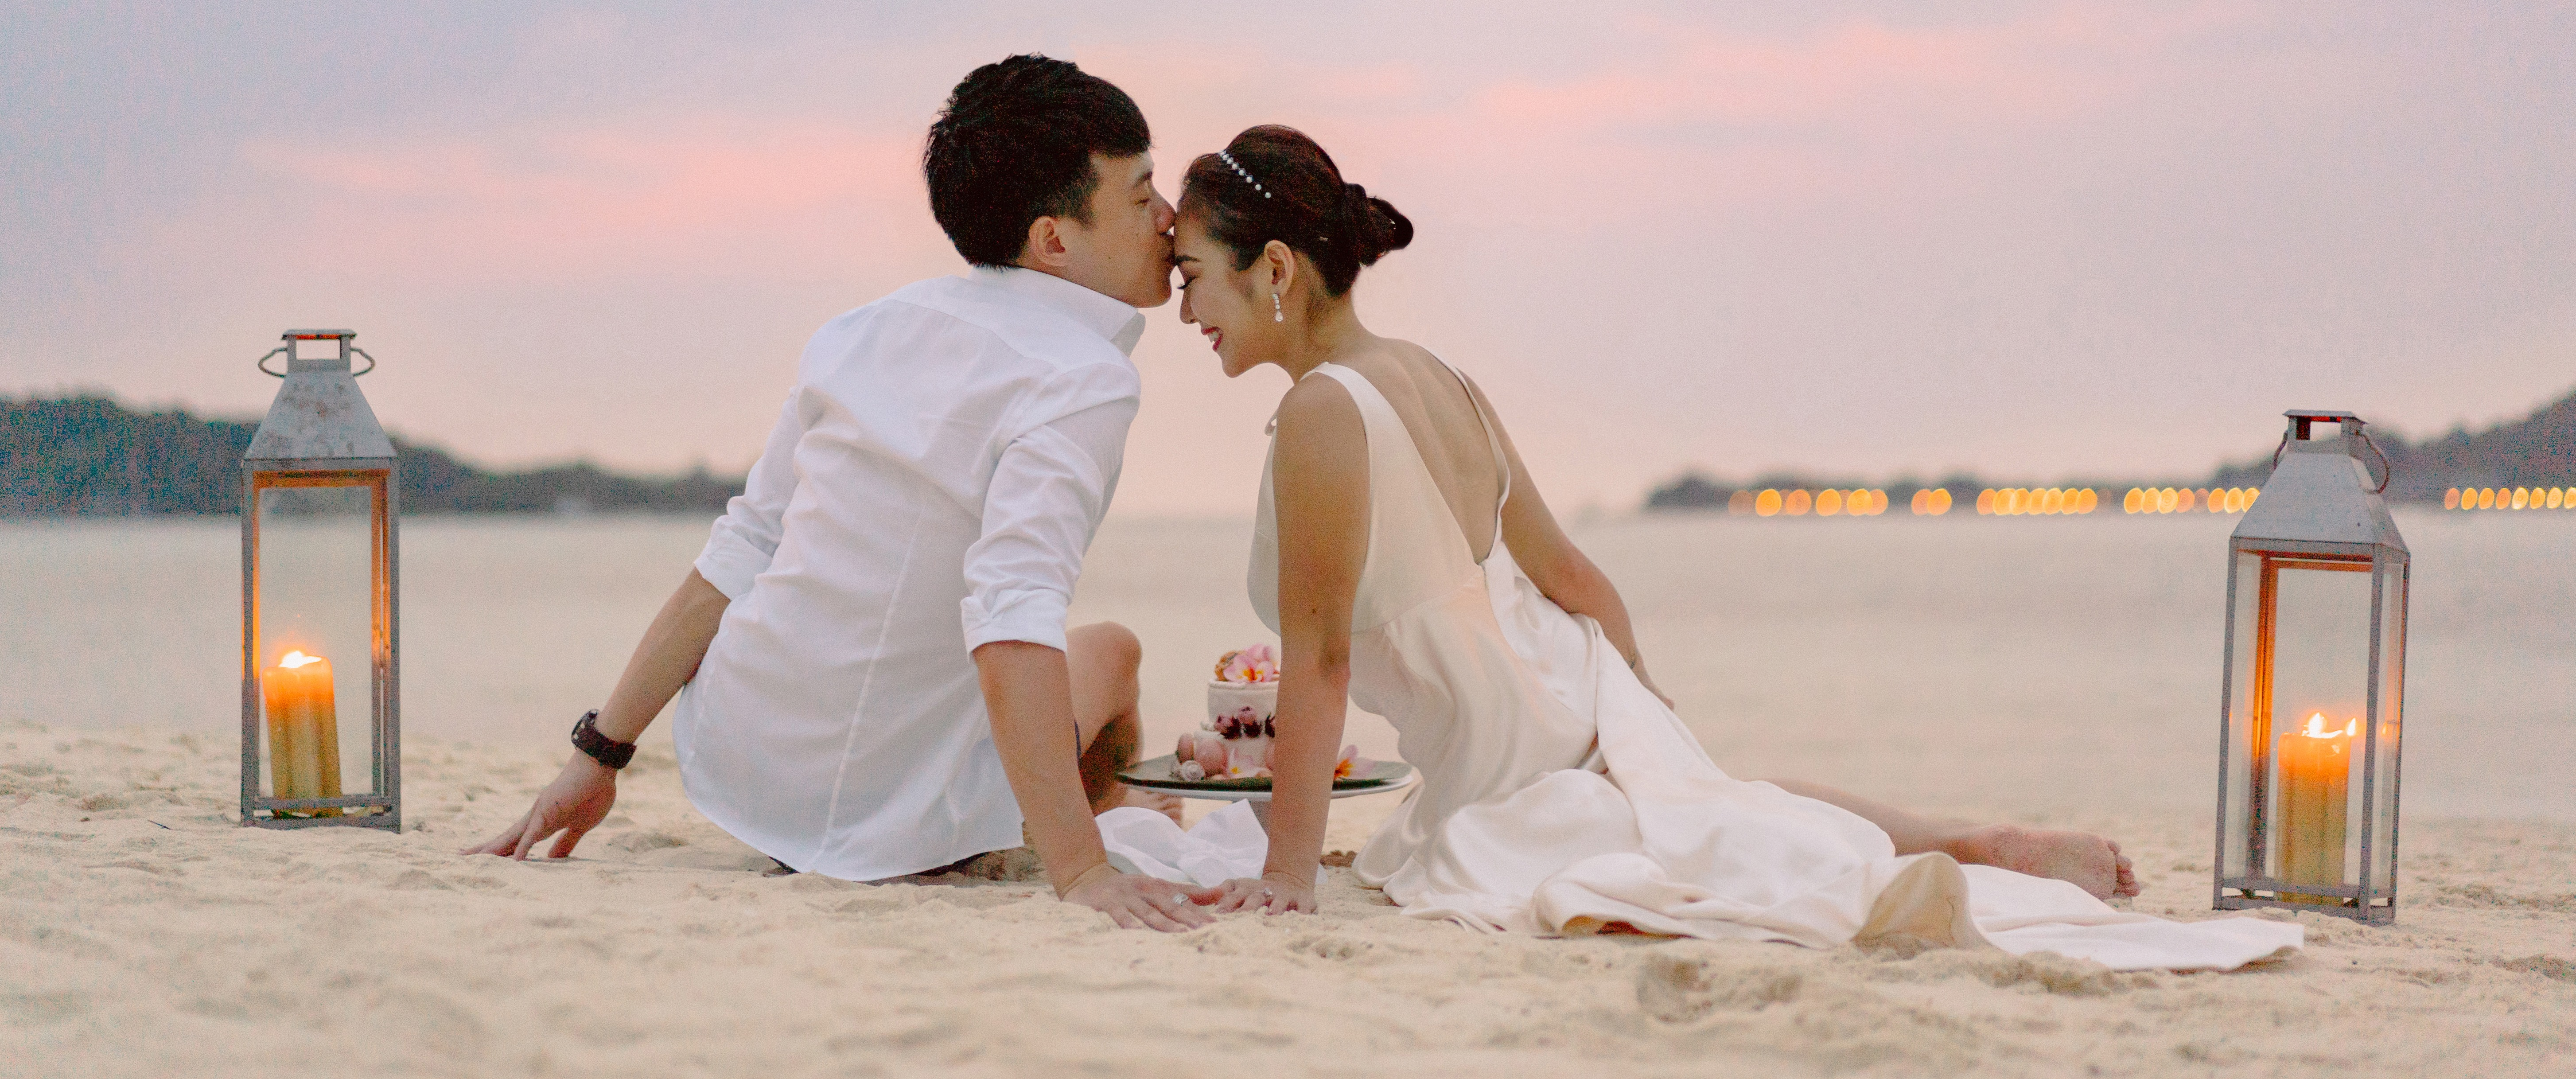 romantic_moment_at_the_beach